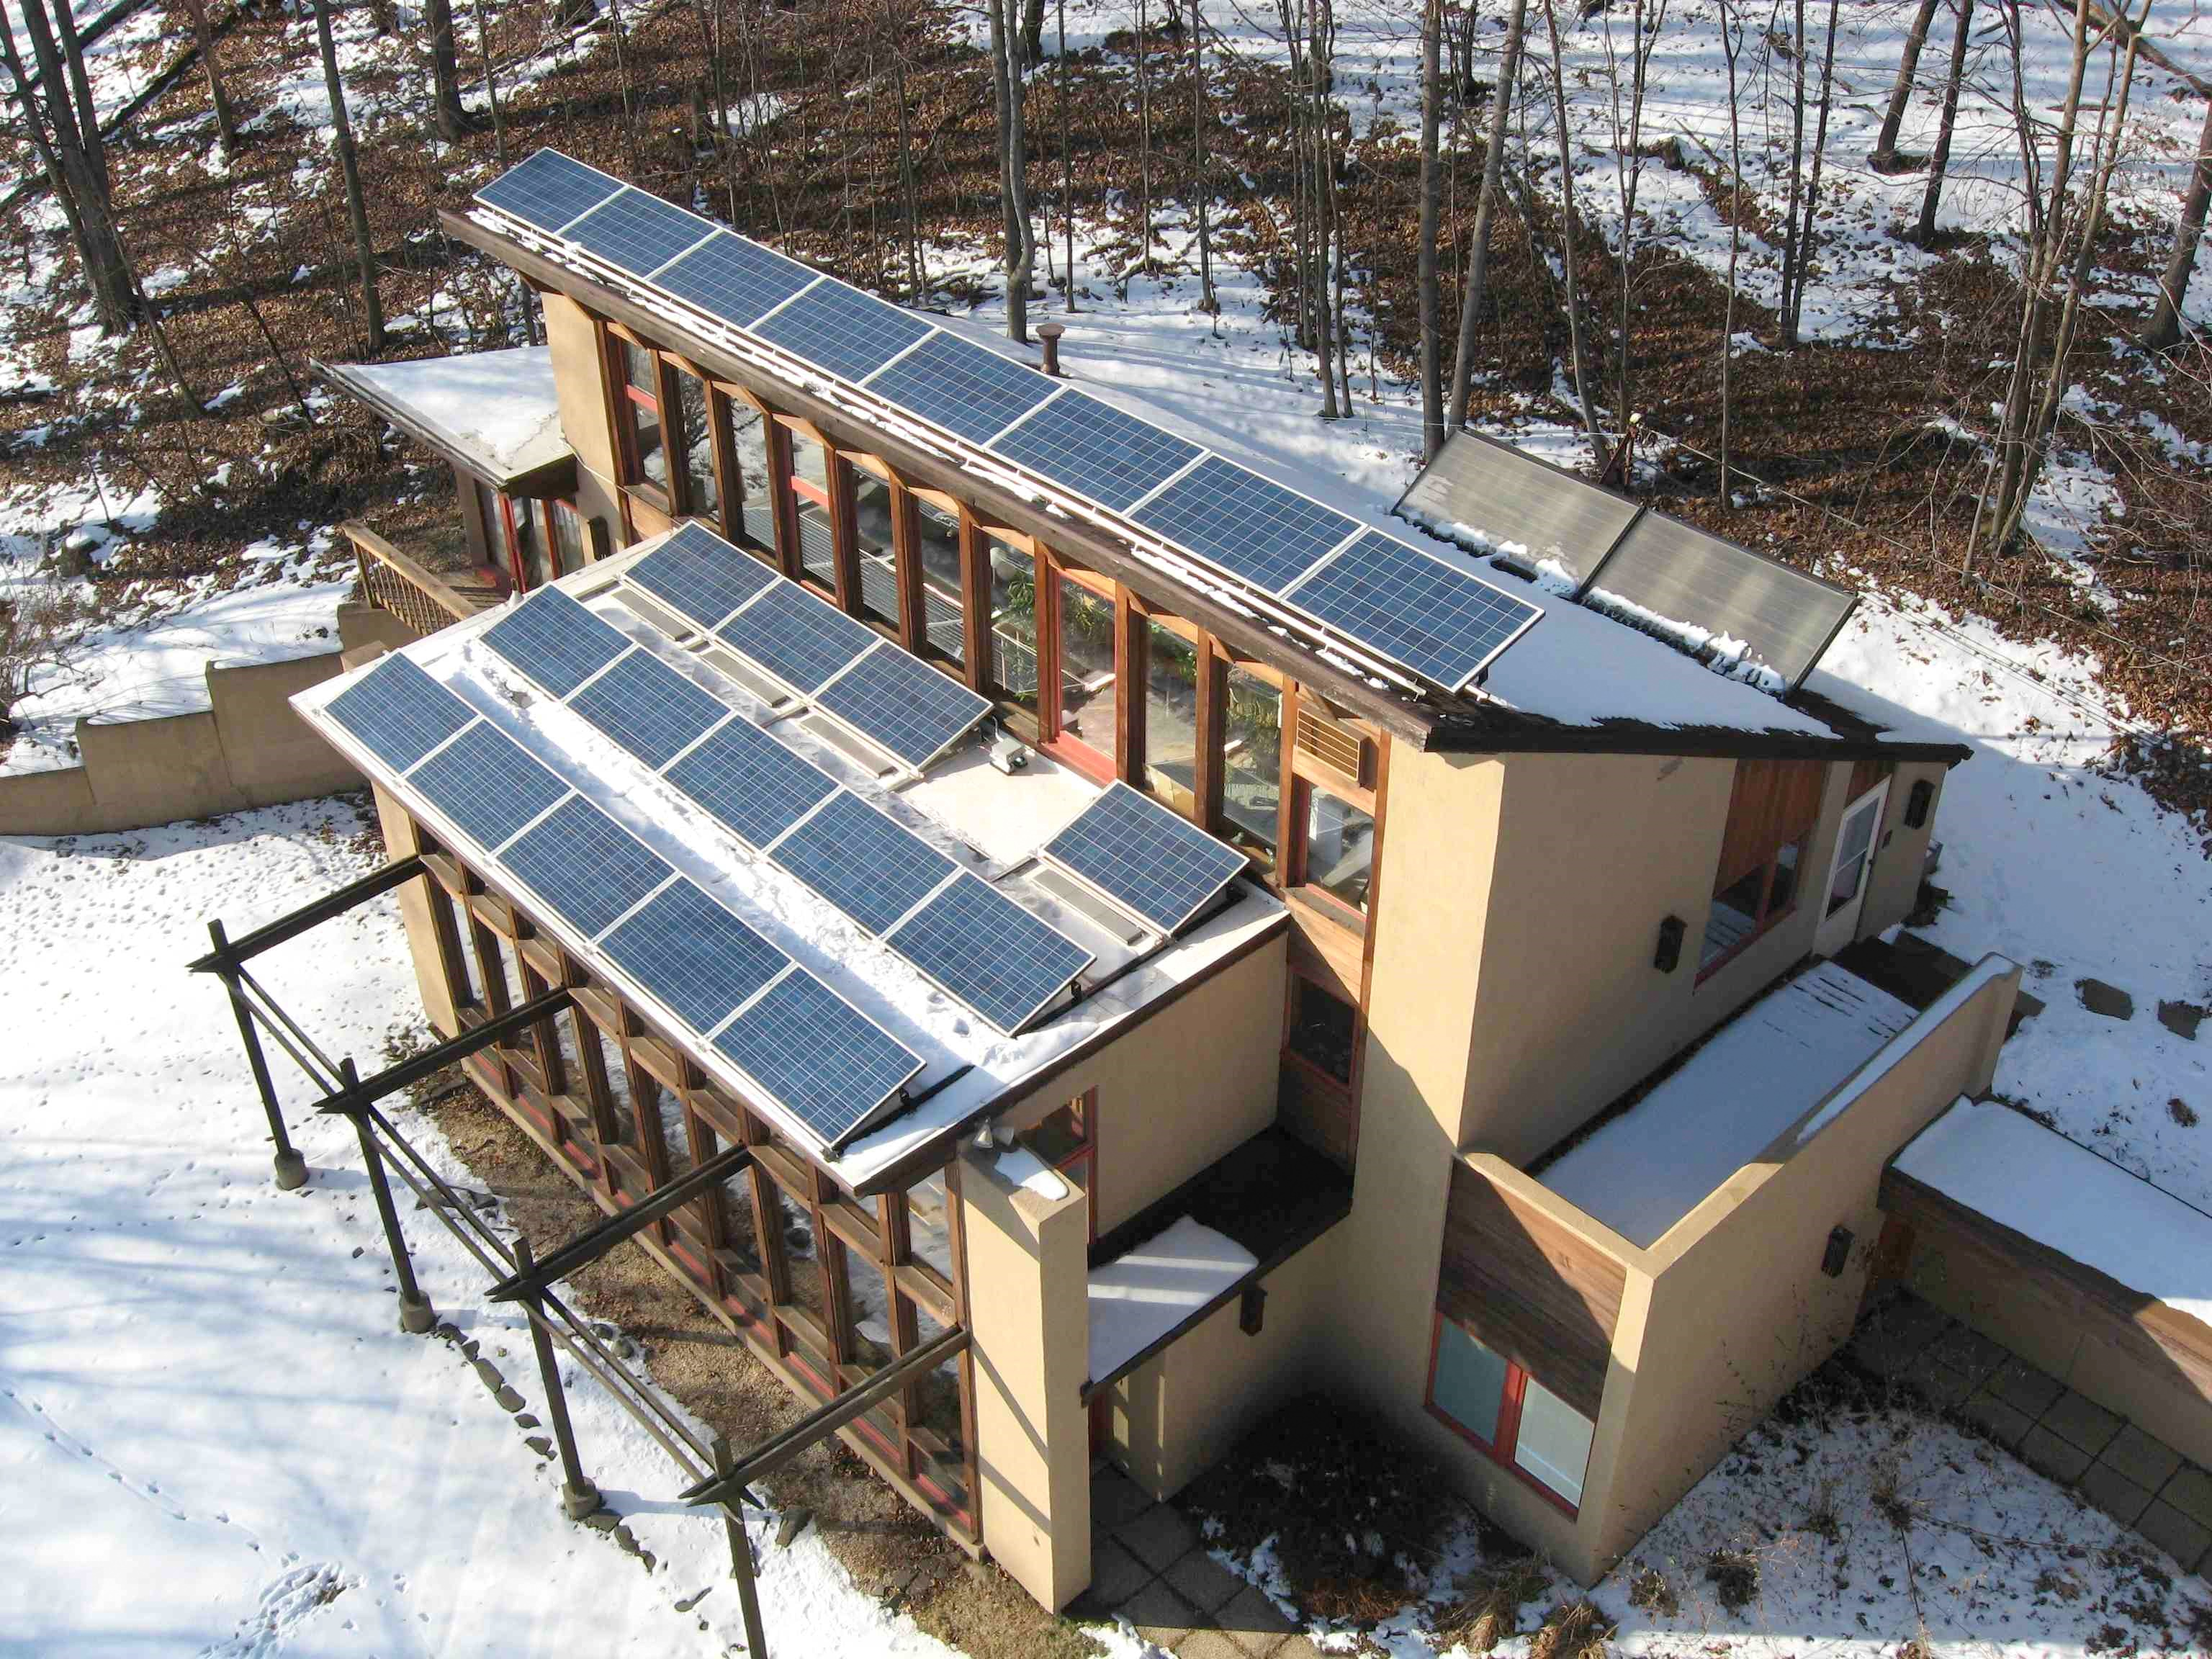 Helios zero net energy home in lafayette nj solar pv for Solar energy house designs